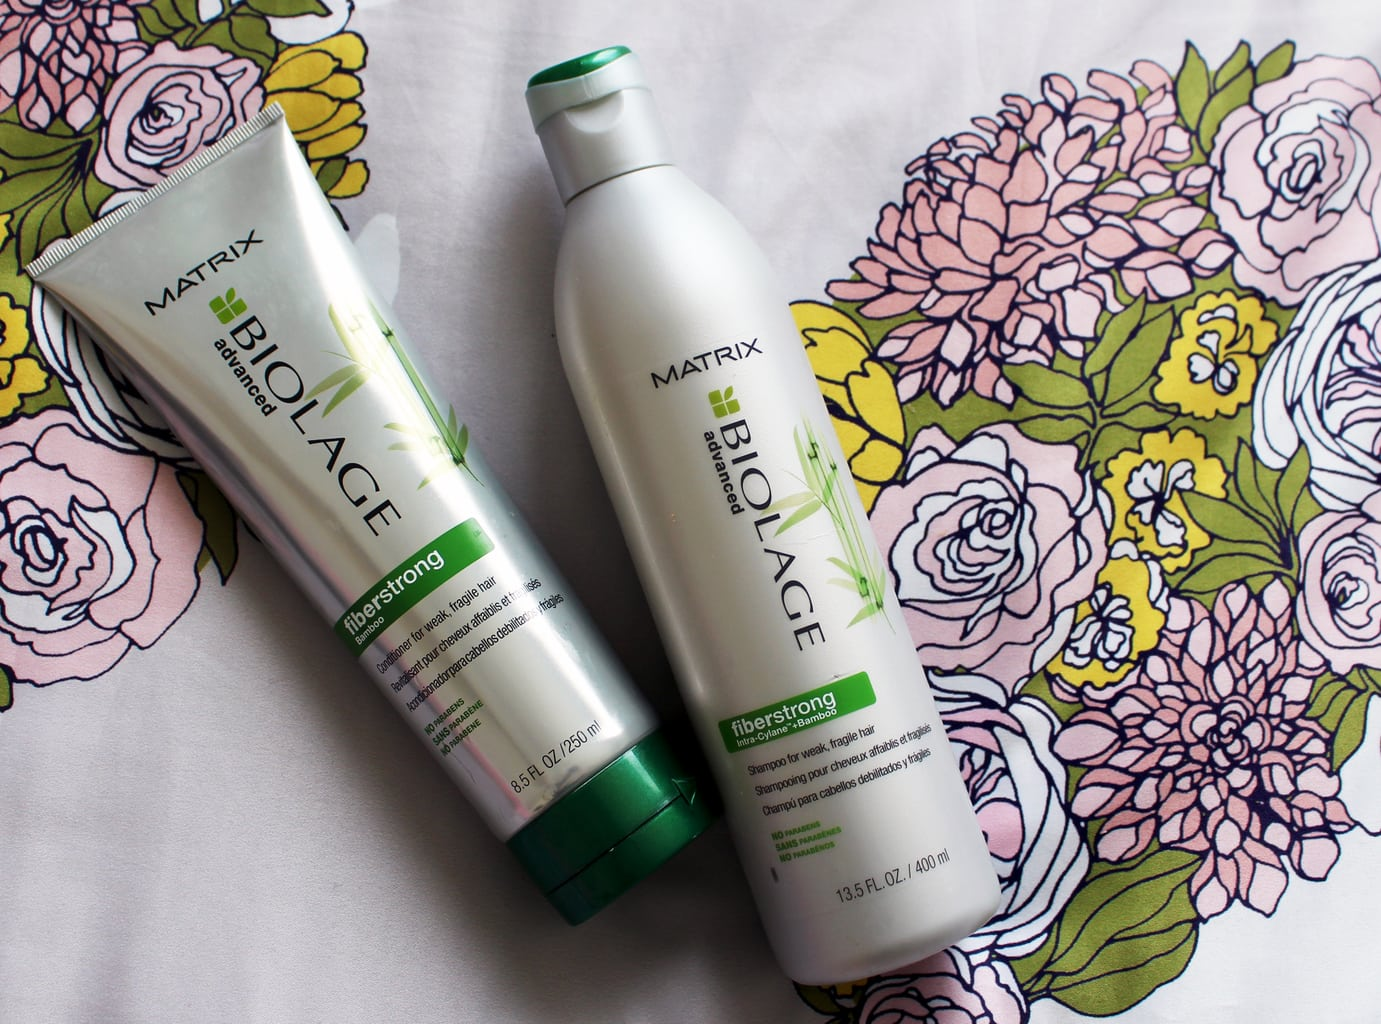 Matrix fiber strong shampoo and conditioner.